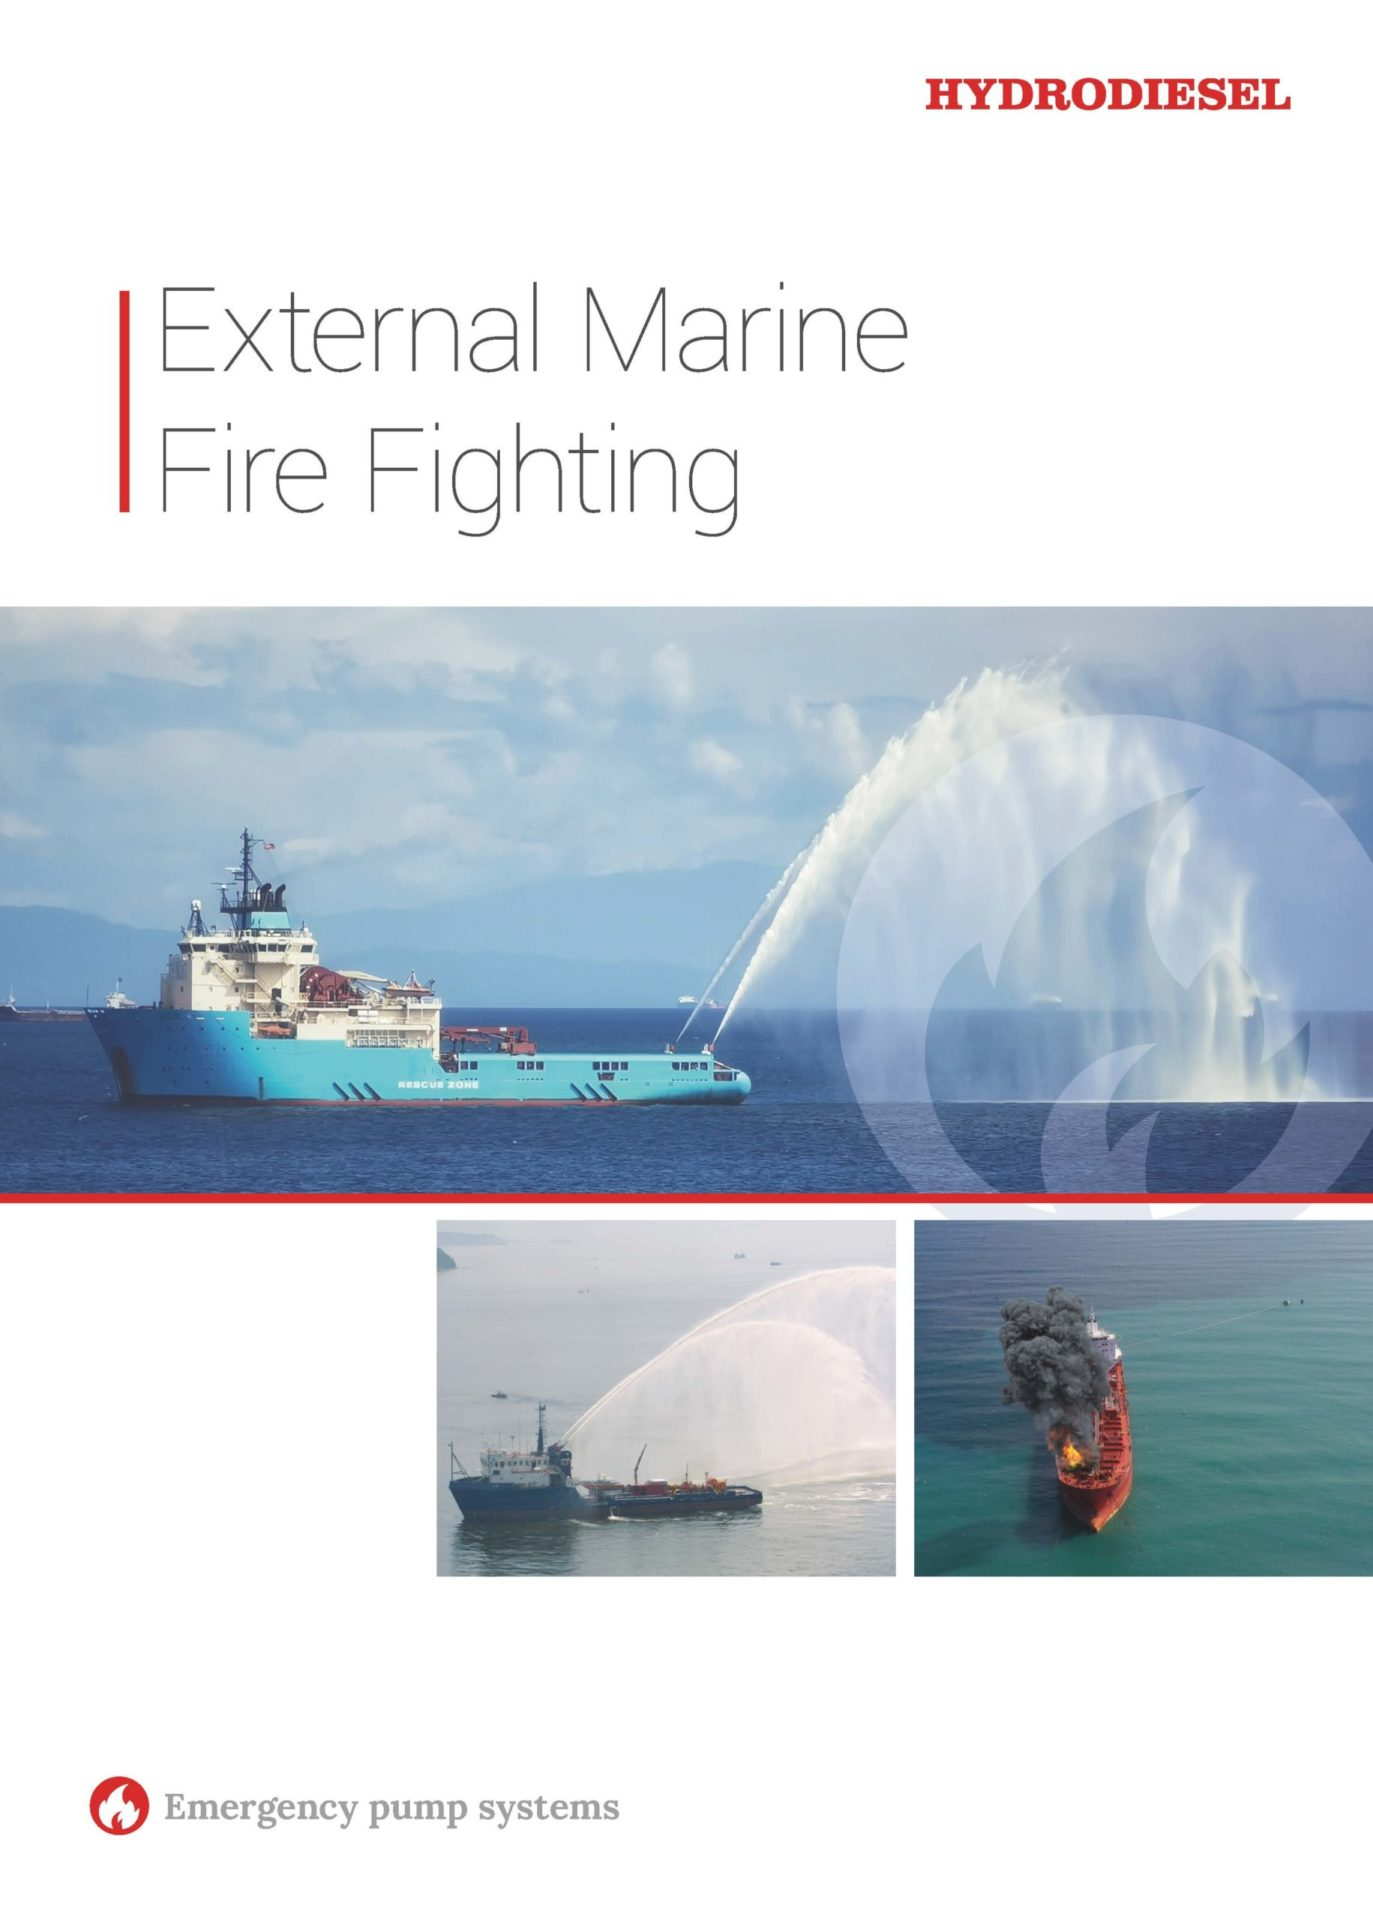 Marine Fire Fighting Solutions